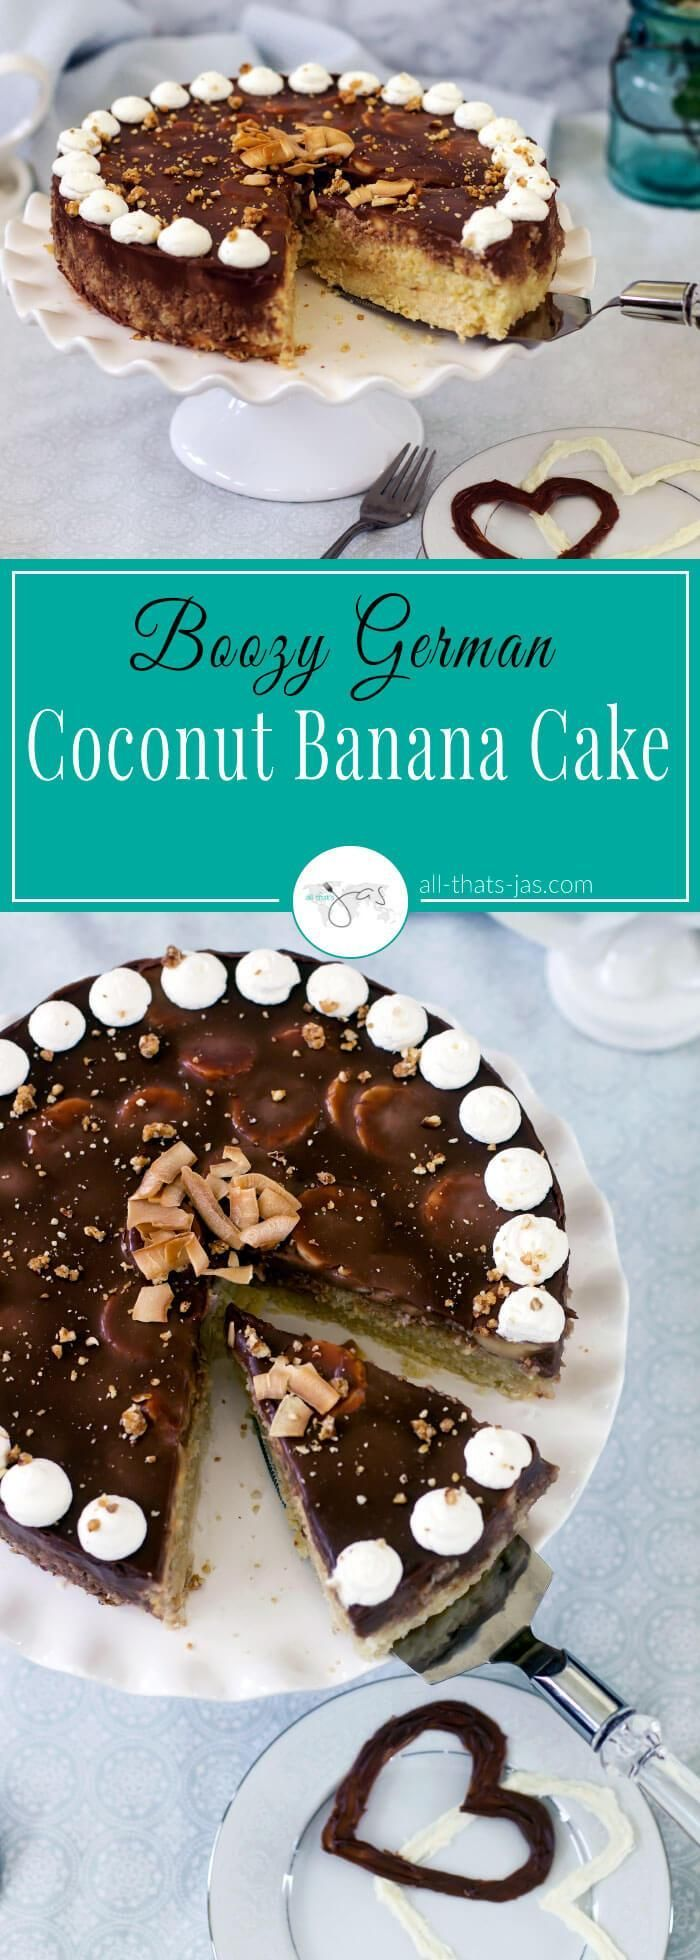 Boozy German Coconut Banana Cake | Recipe | Cake | Pinterest ...